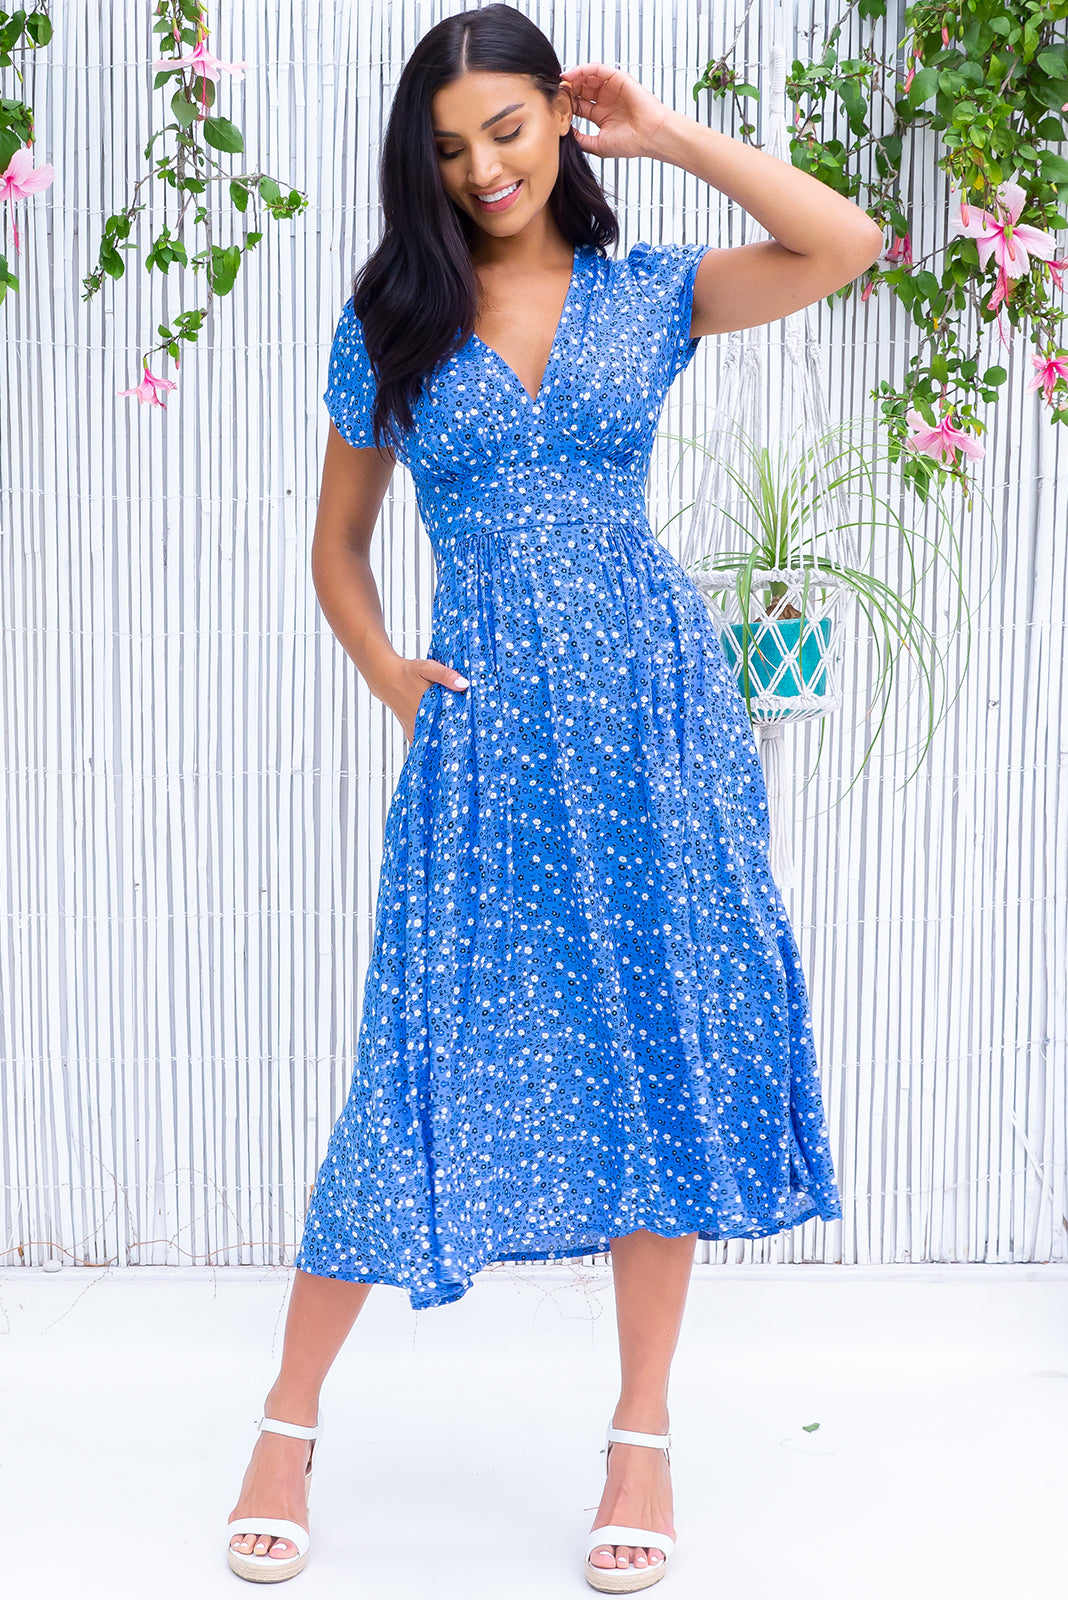 The Lizzie Constellation Blue dress features fitted basque waist with gathered bust, waist features elastic shirring at back, petite side pockets and 100% rayon in azure blue base with ditzy floral print.